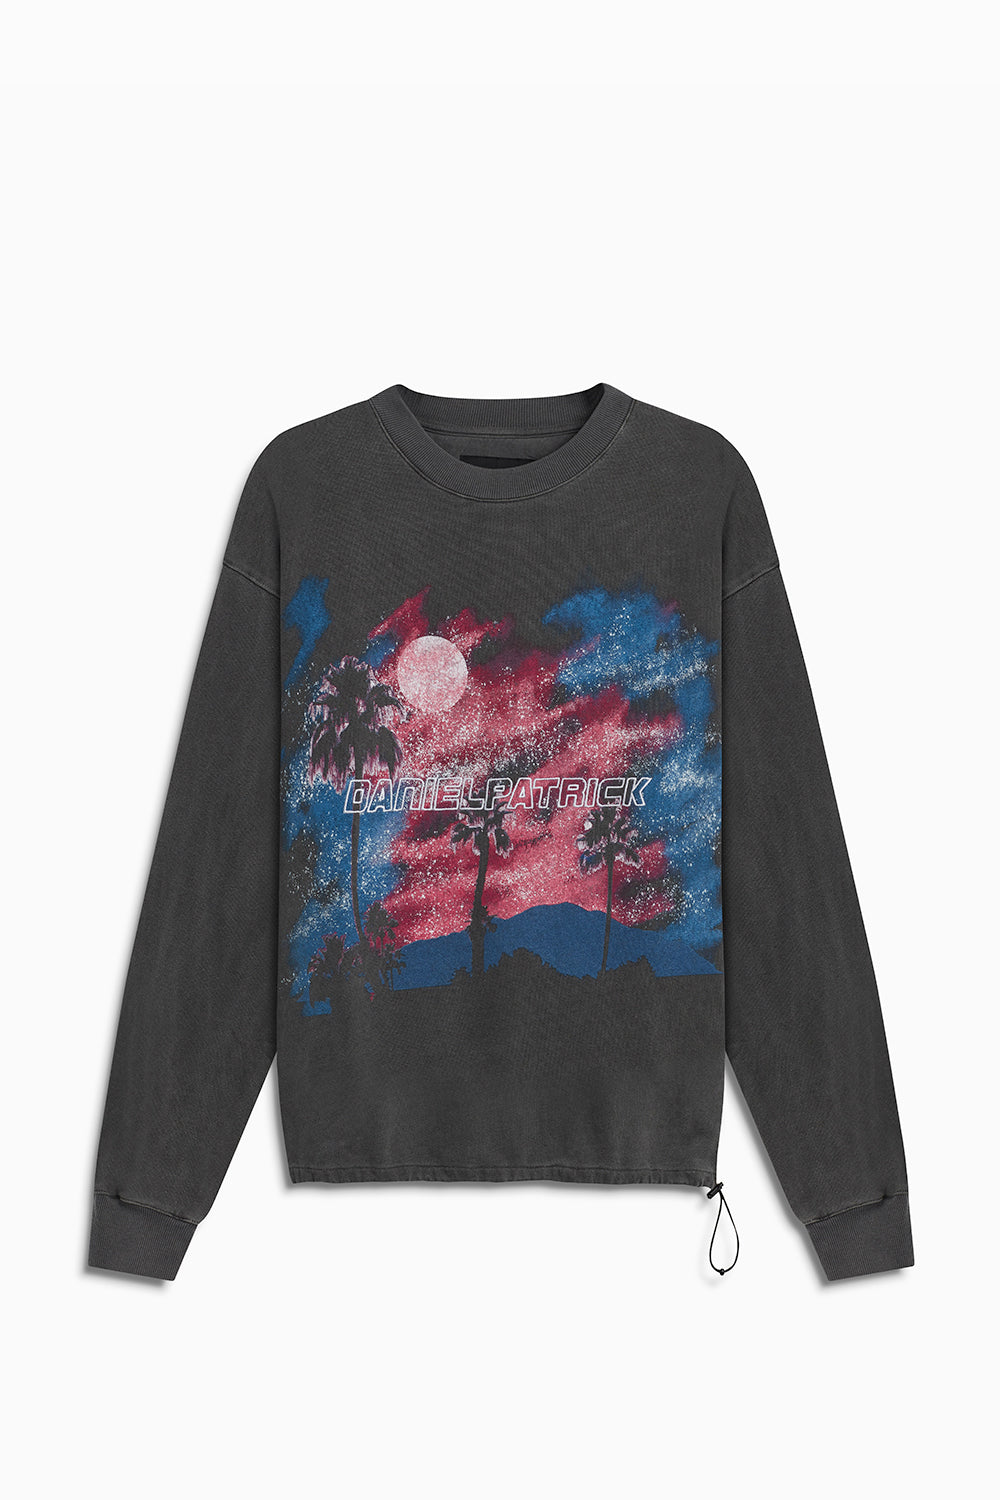 sunset bungee sweatshirt / vintage black + pink + blue